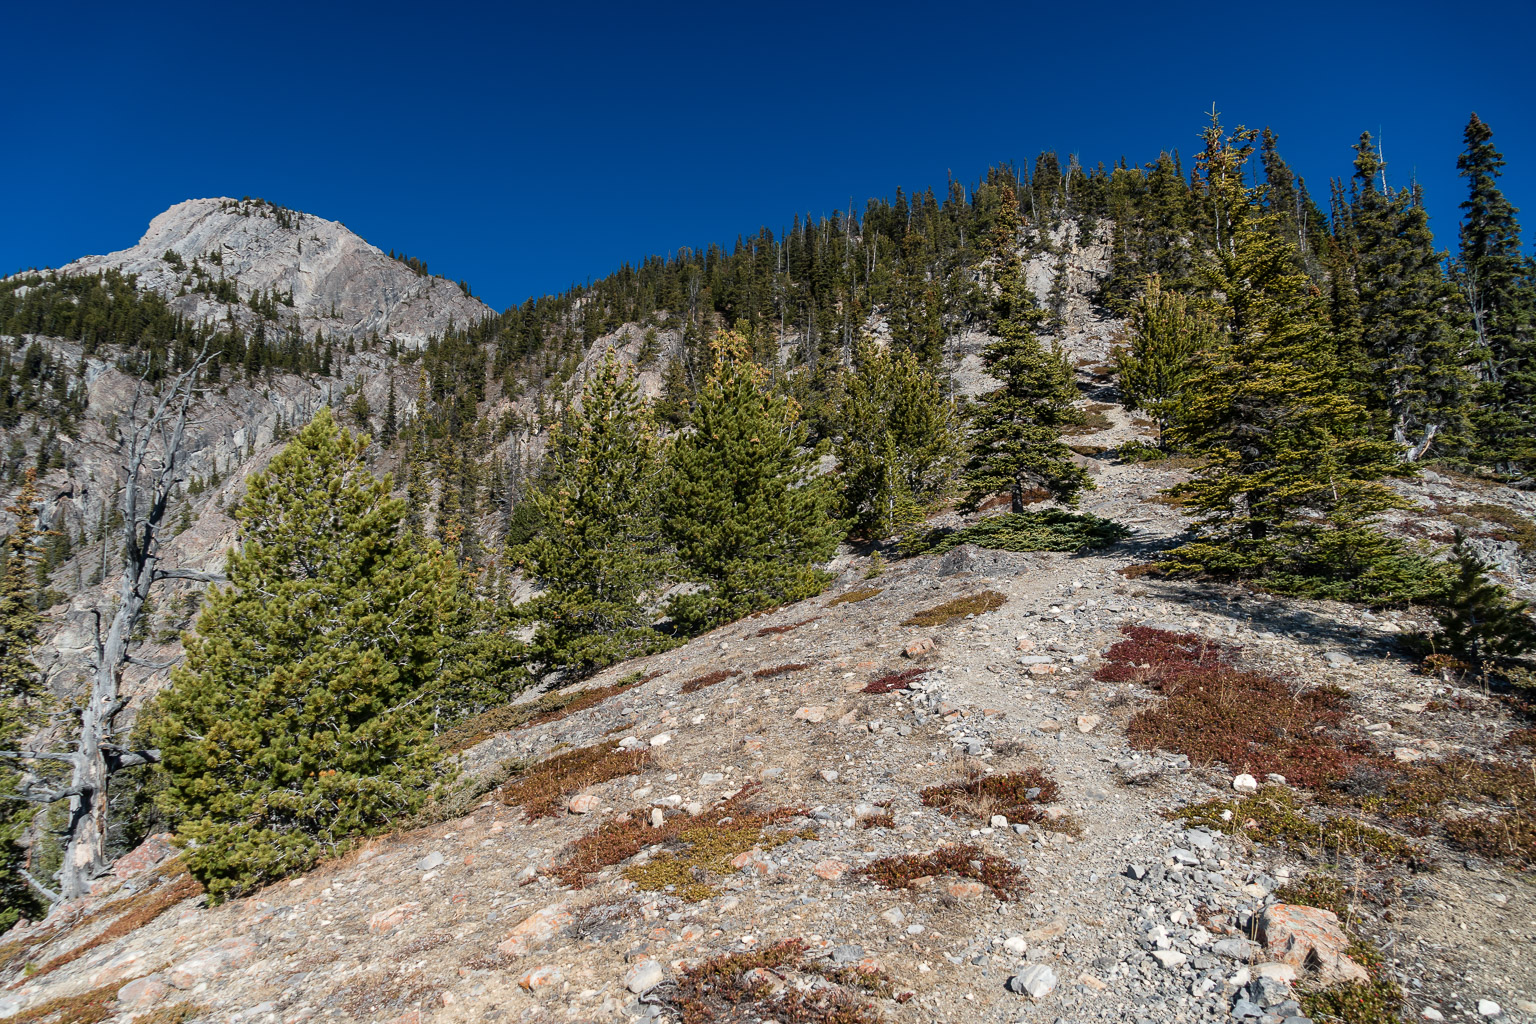 Hiking up the steep, hot south ridge of Mount Cory.